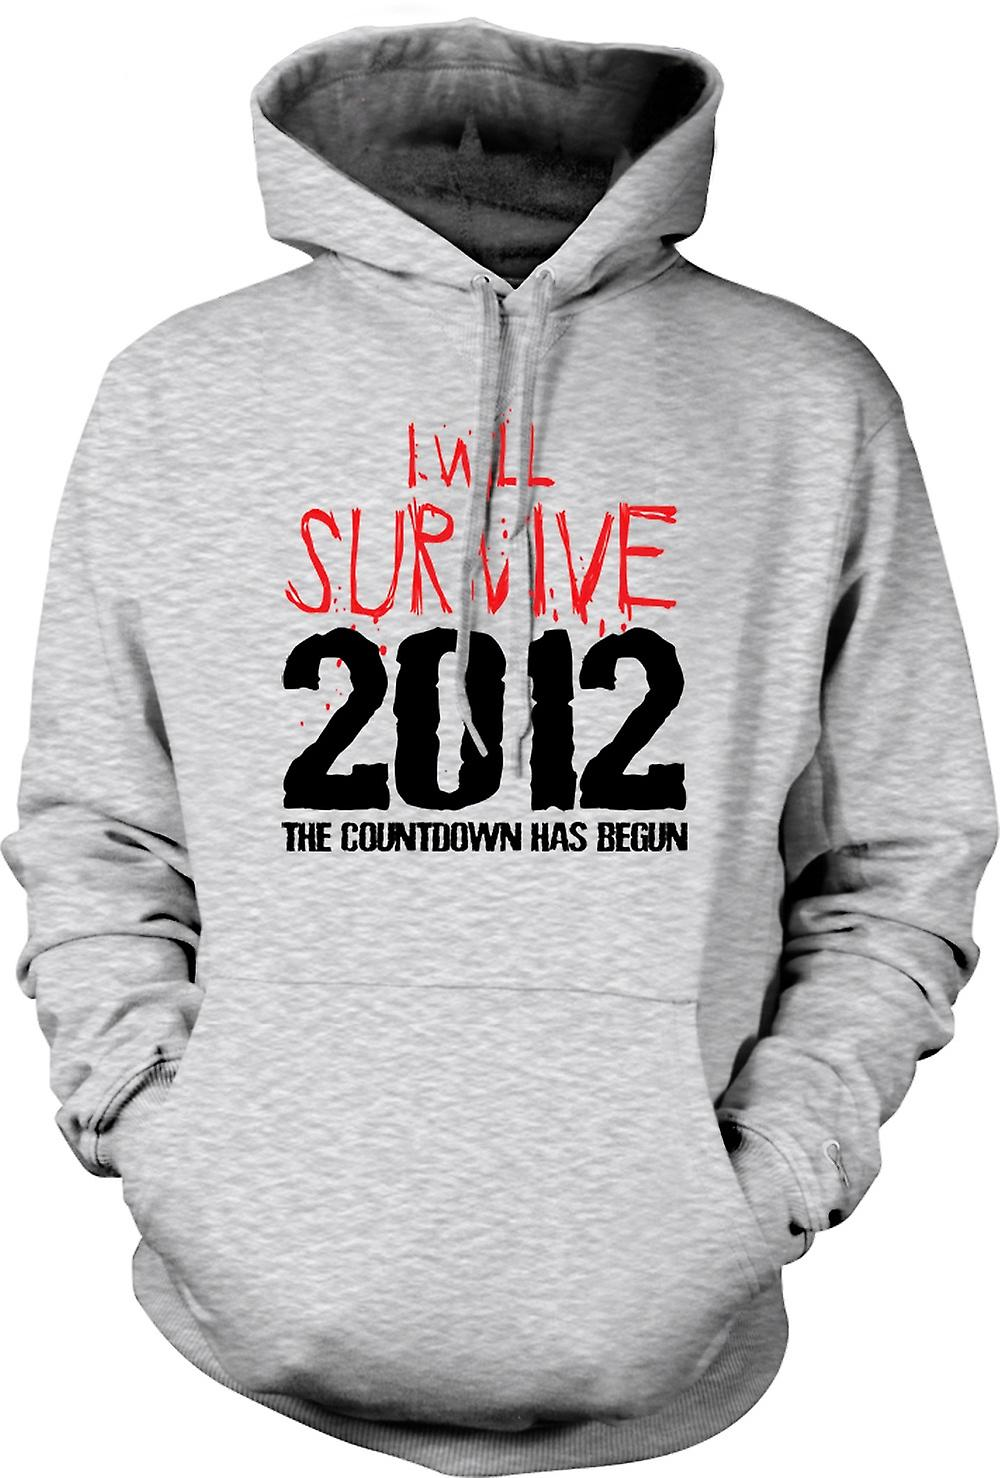 Mens Hoodie - 2012 I Will Survive Apocalypse End Of World